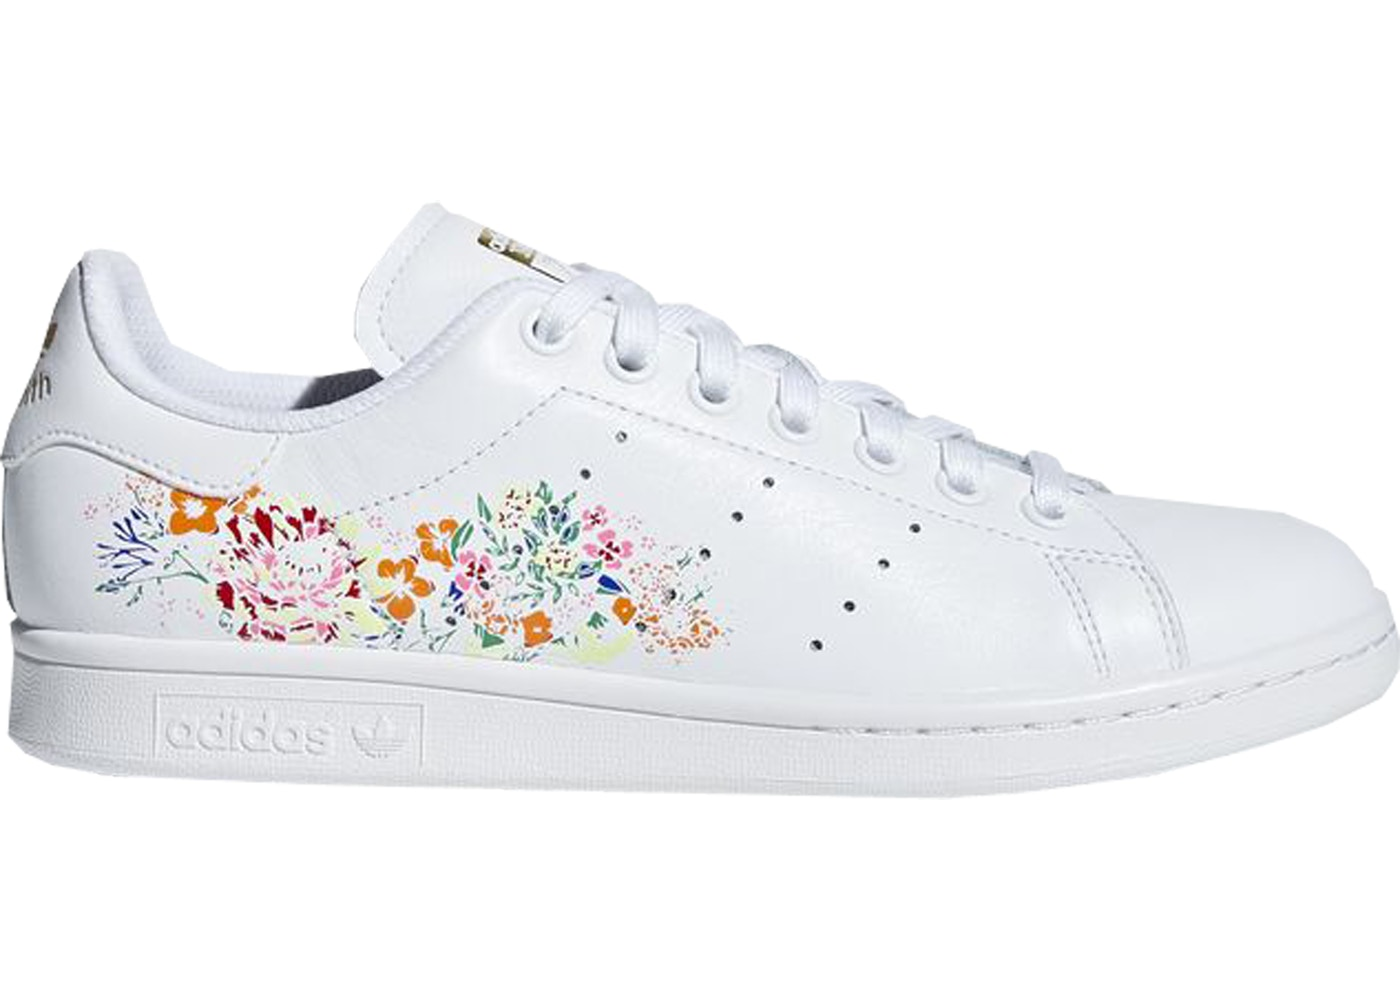 release date 47161 f11f6 adidas Stan Smith White Floral (W) - BC0259